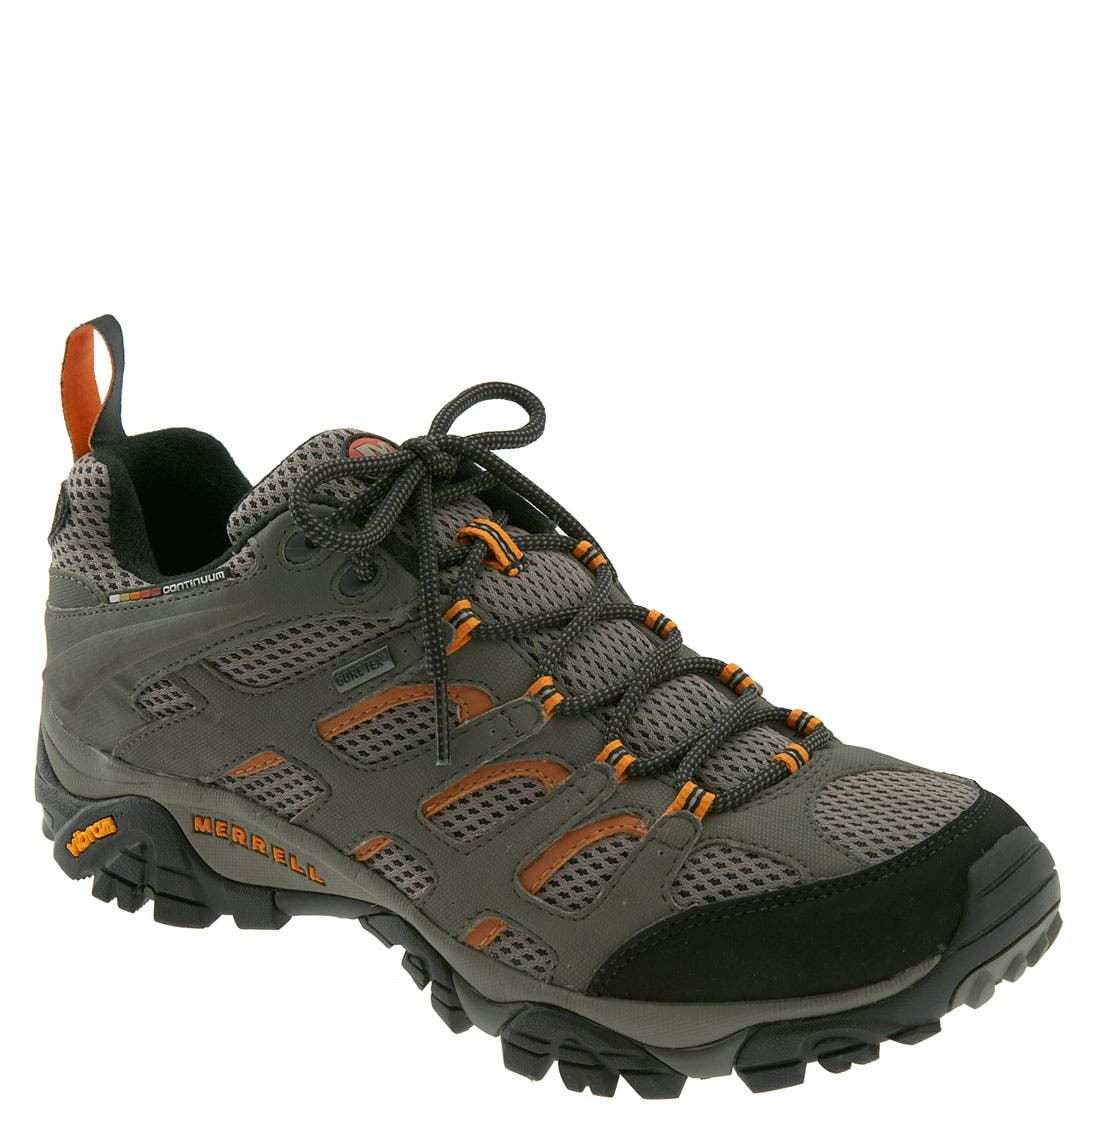 Alternate Image 1 Selected - Merrell 'Moab GTX XCR' Hiking Shoe (Men)